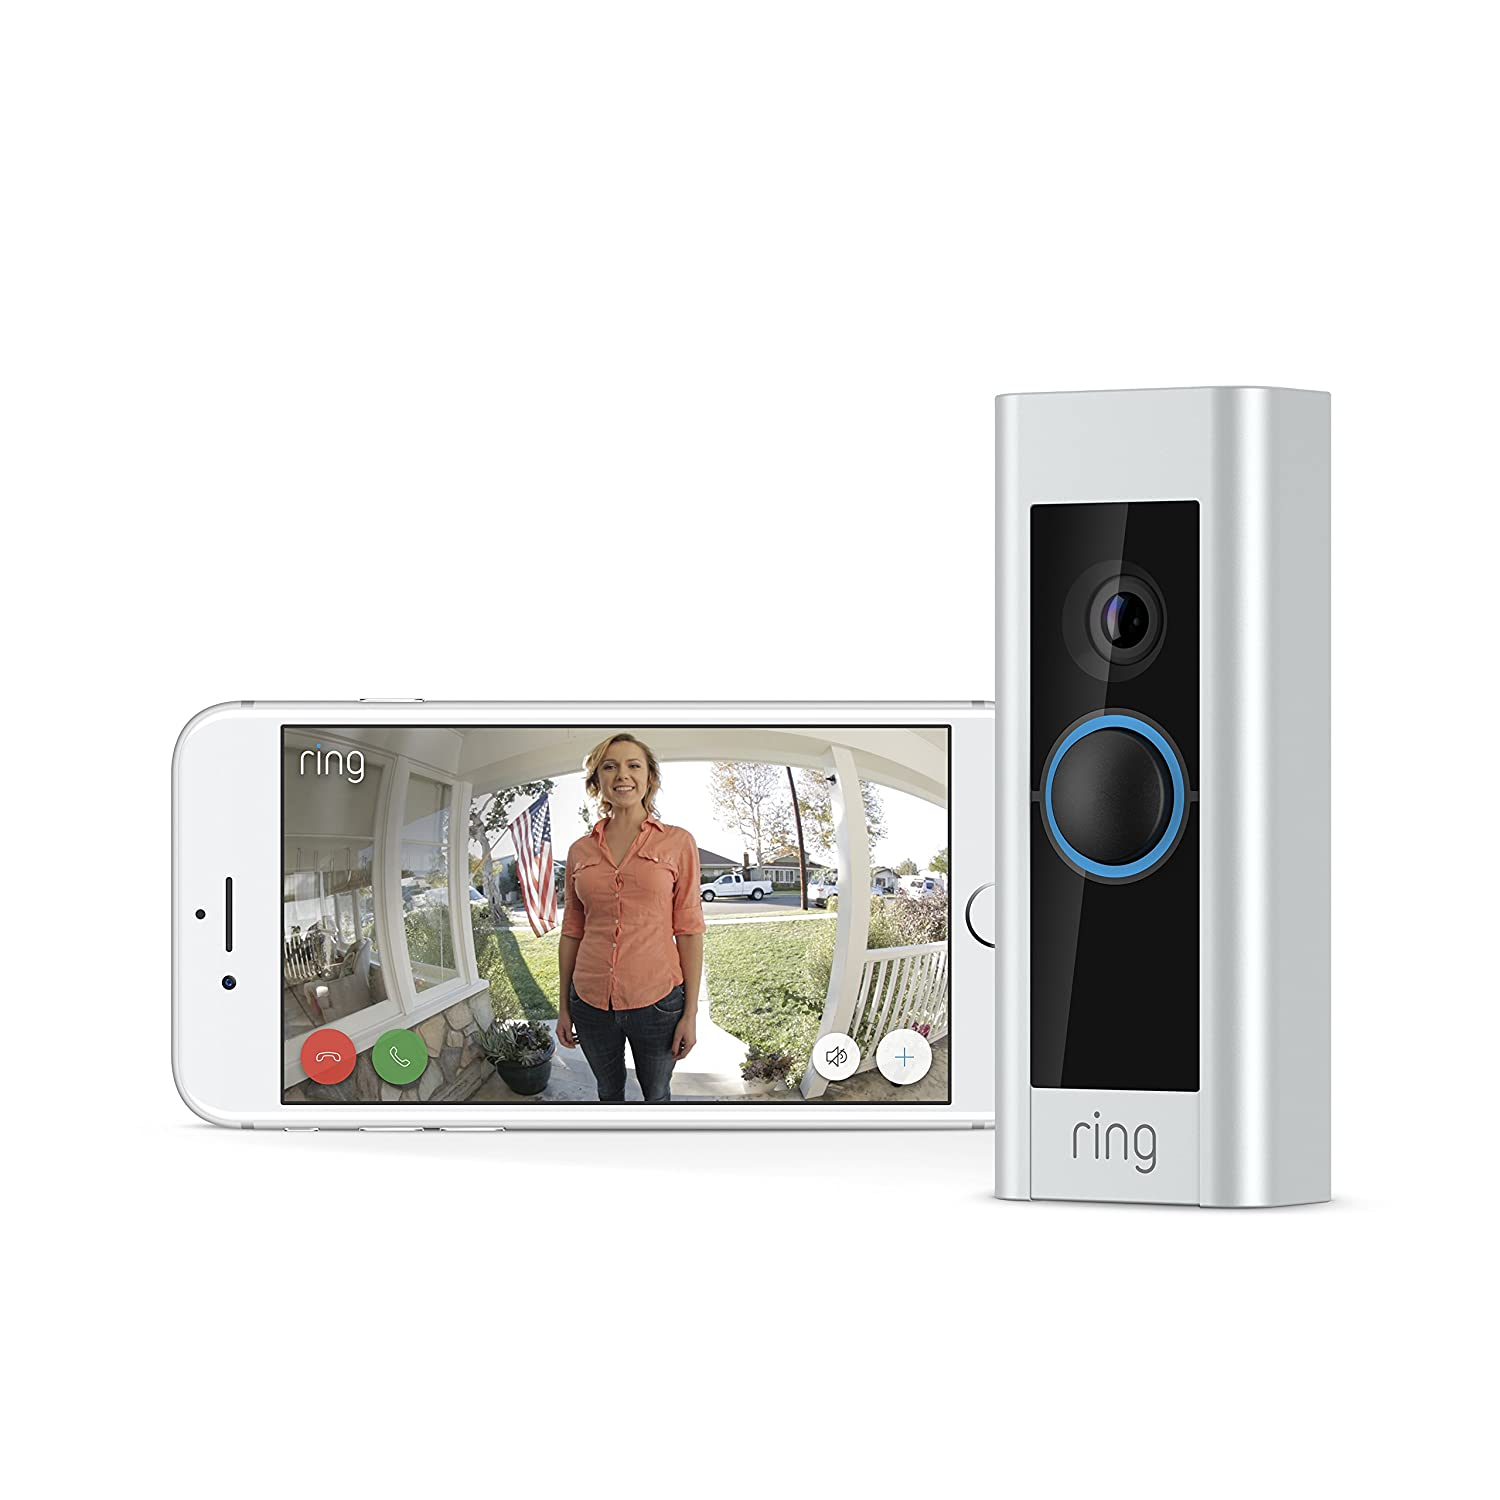 Best Smart Doorbell Camera WiFi for more Secure Home - 2019